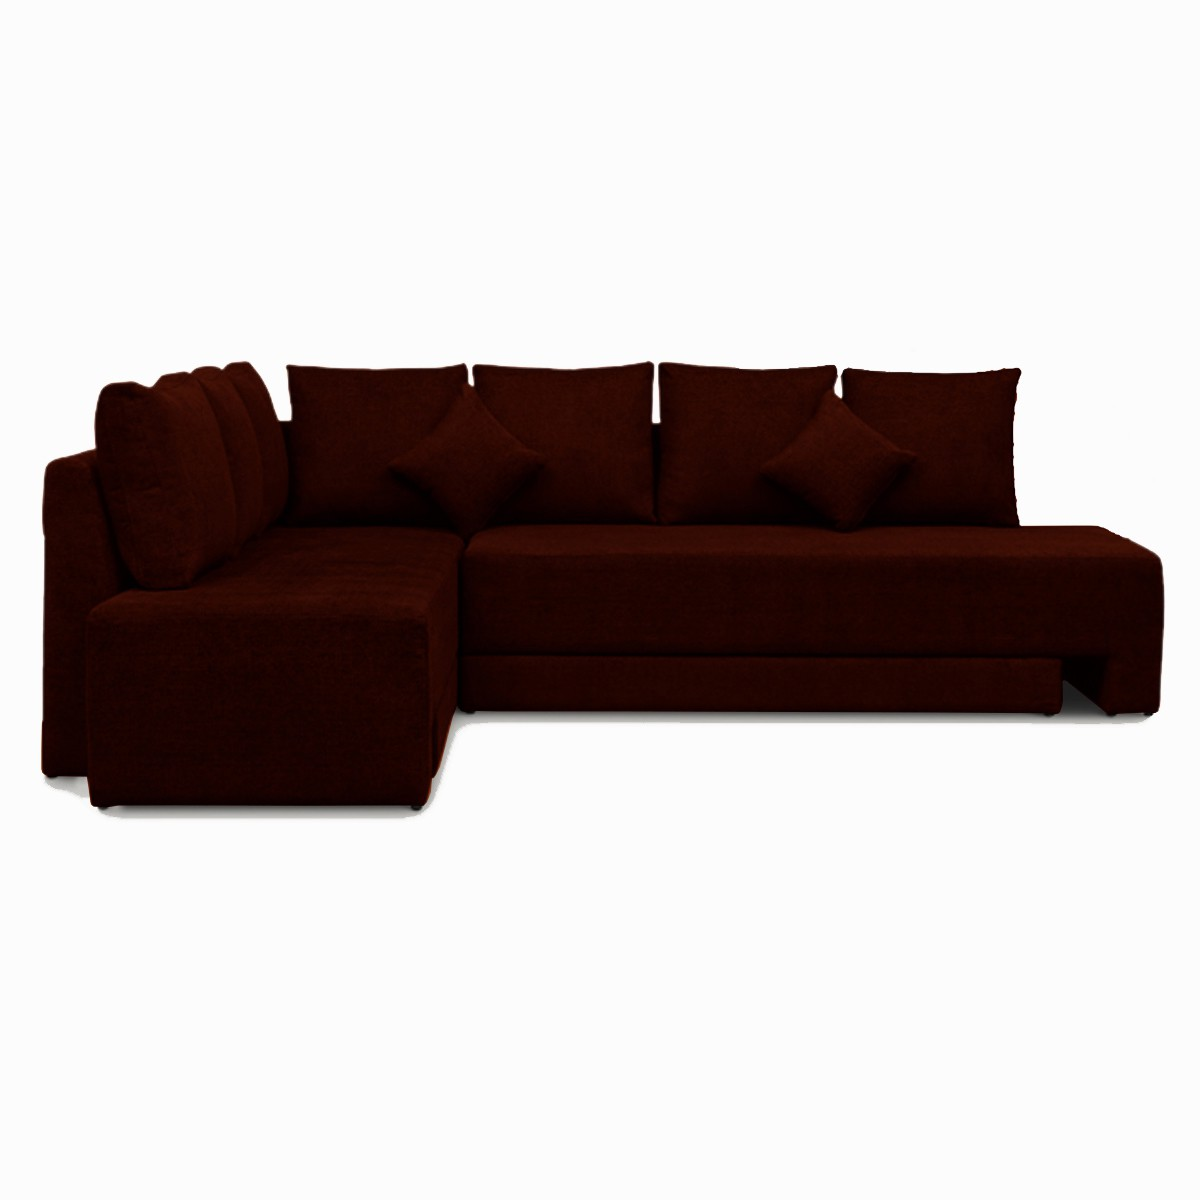 Knight Industry Fabric 5 Seater Sectional class=